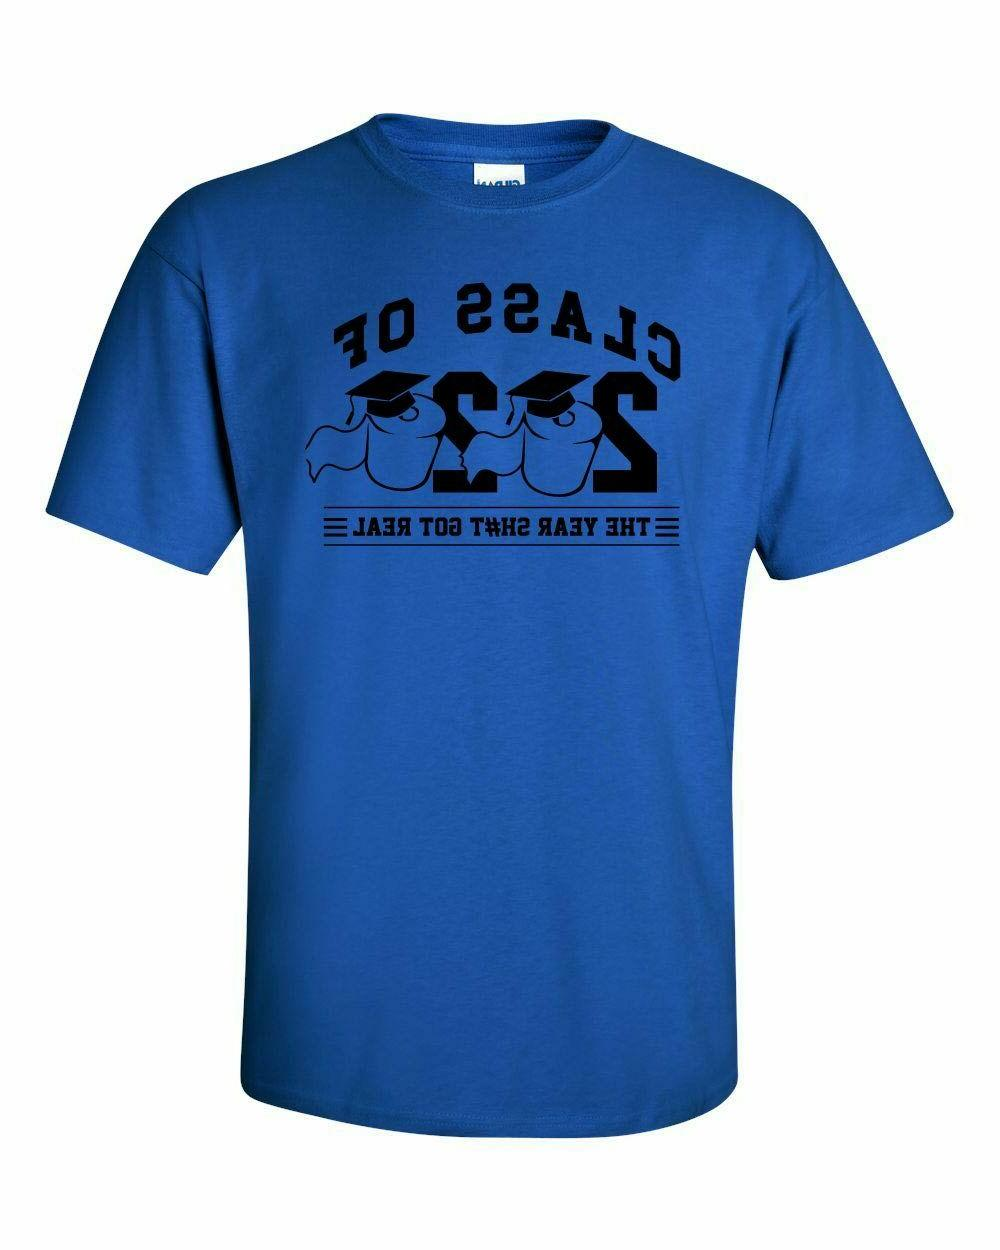 Class Toilet T-shirt Year Sh#t Real Colors